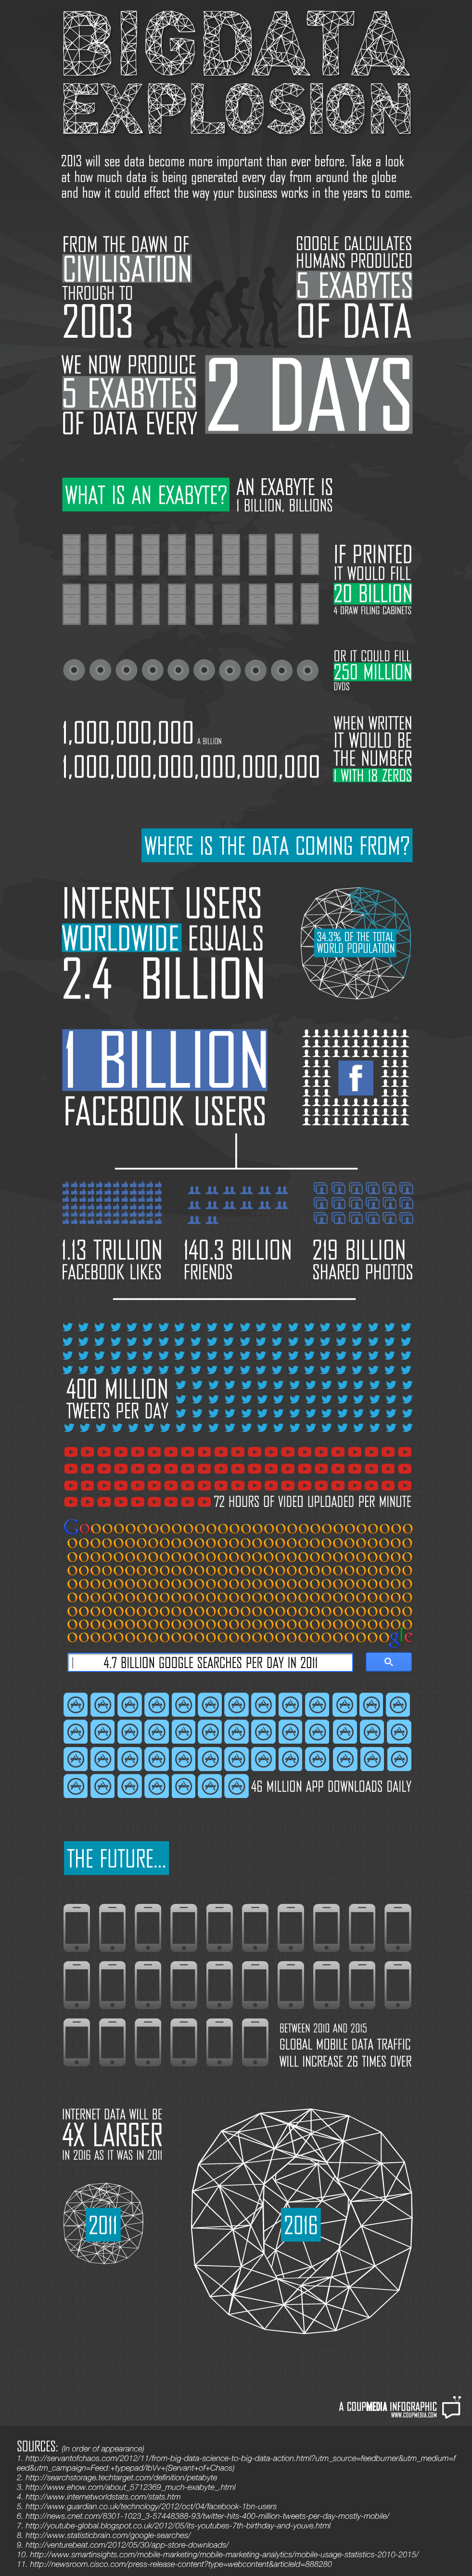 The Big Data Explosion infographic by visual.ly